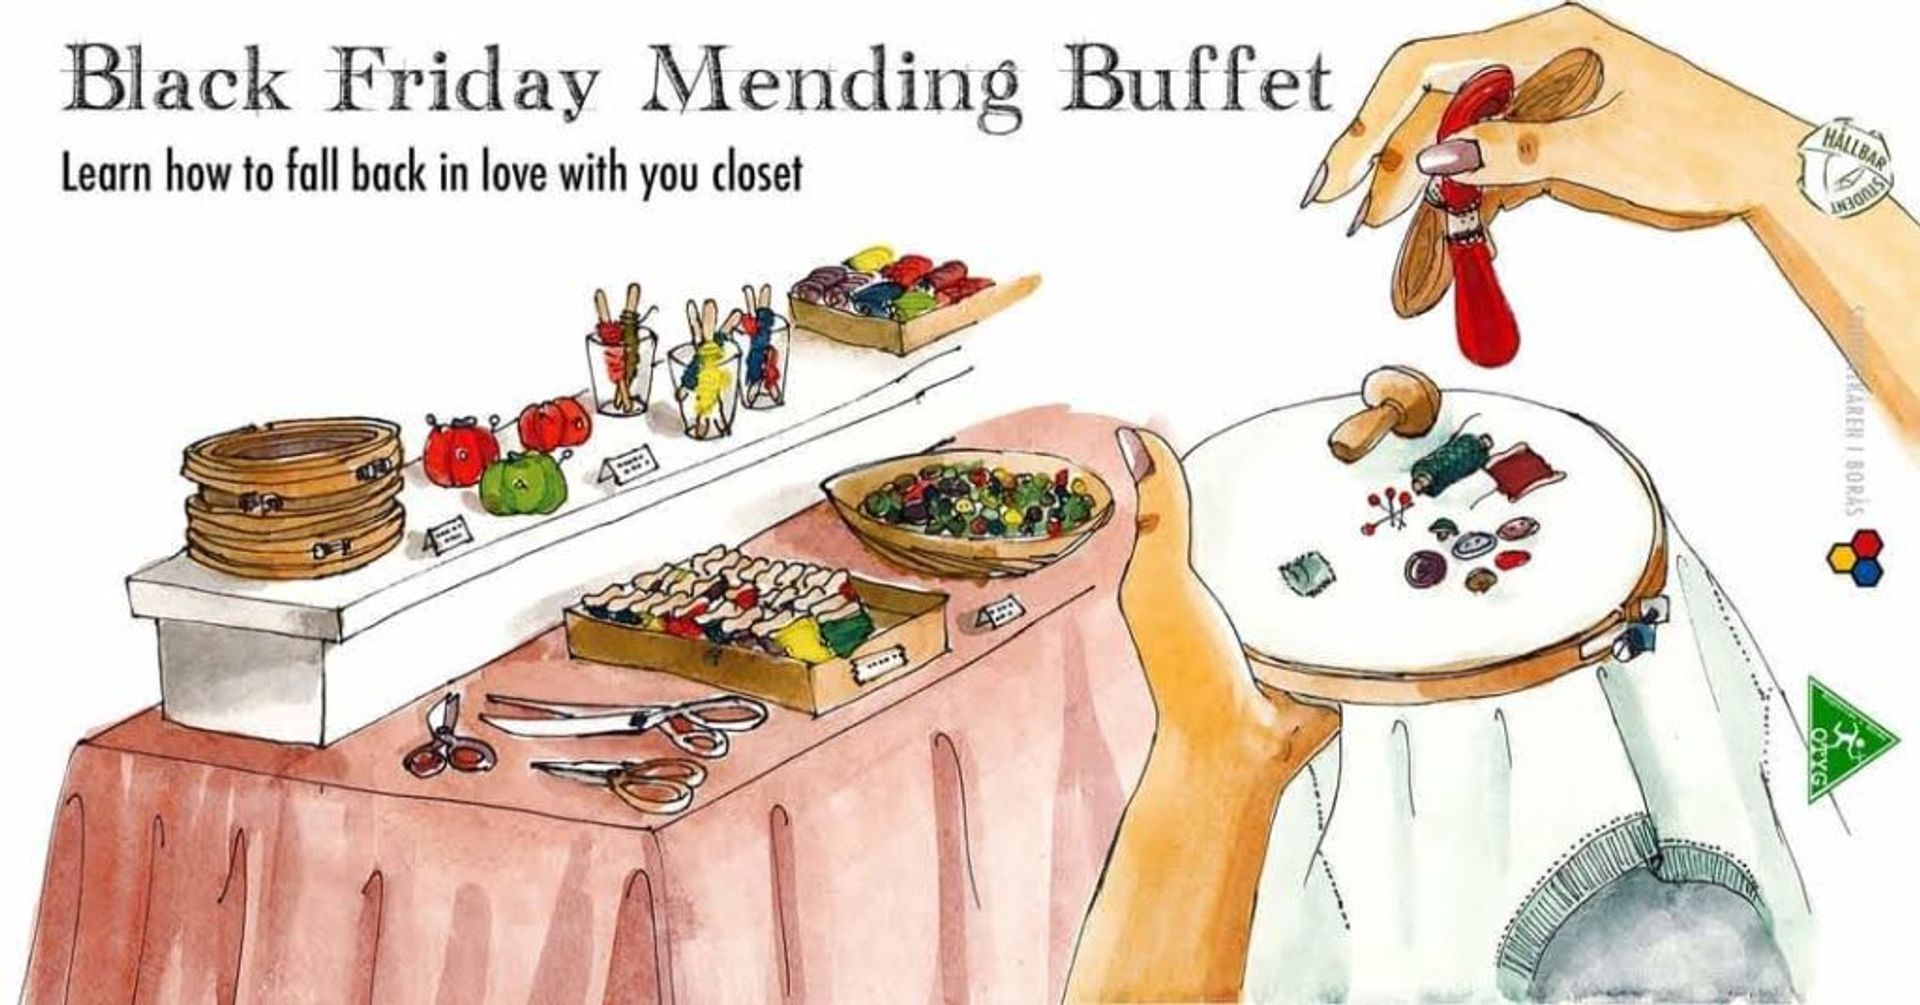 Illustration advertising the Hållbar Student Black Friday Mending Buffet. The text reads 'Black Friday Mending Buffet. Learn how to fall back in love with your closet'.